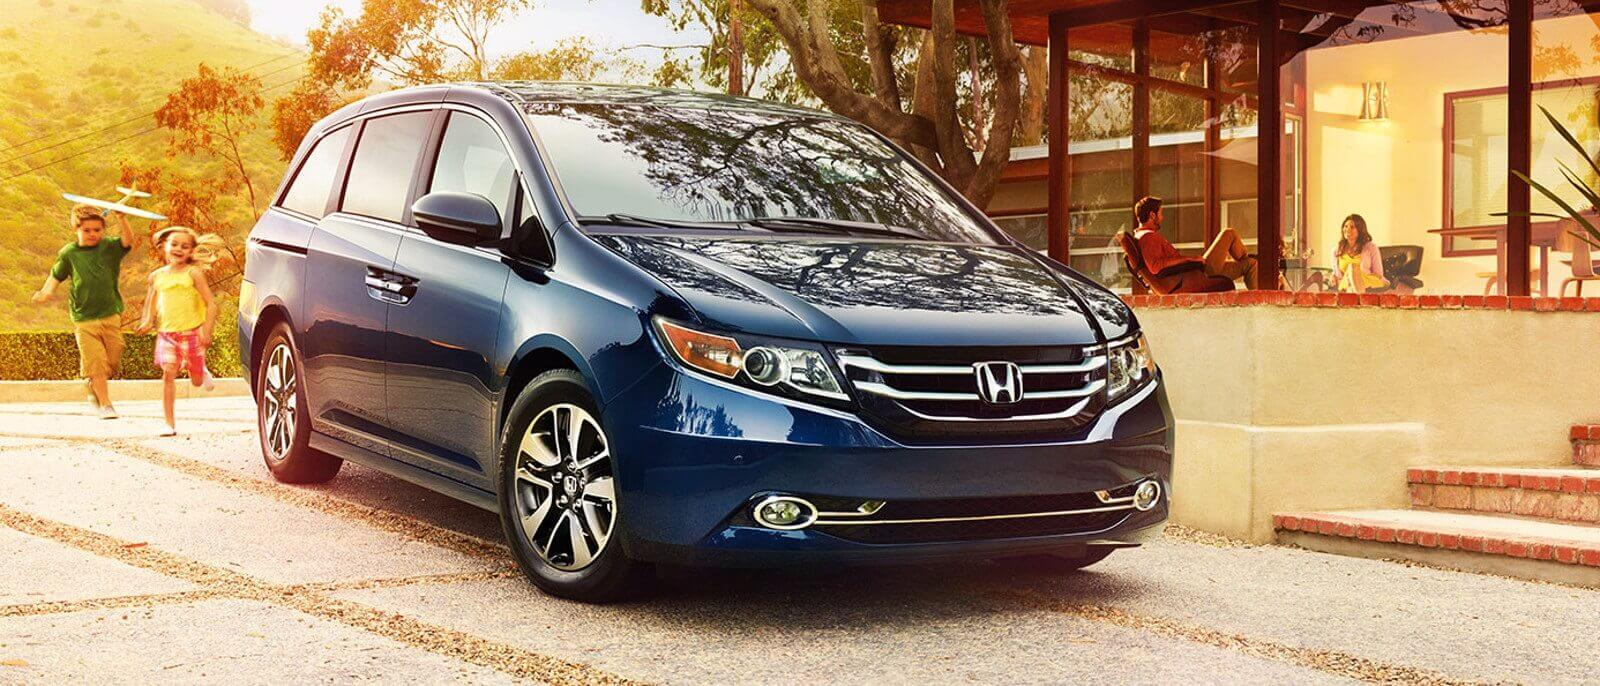 2016 Honda Odyssey front view